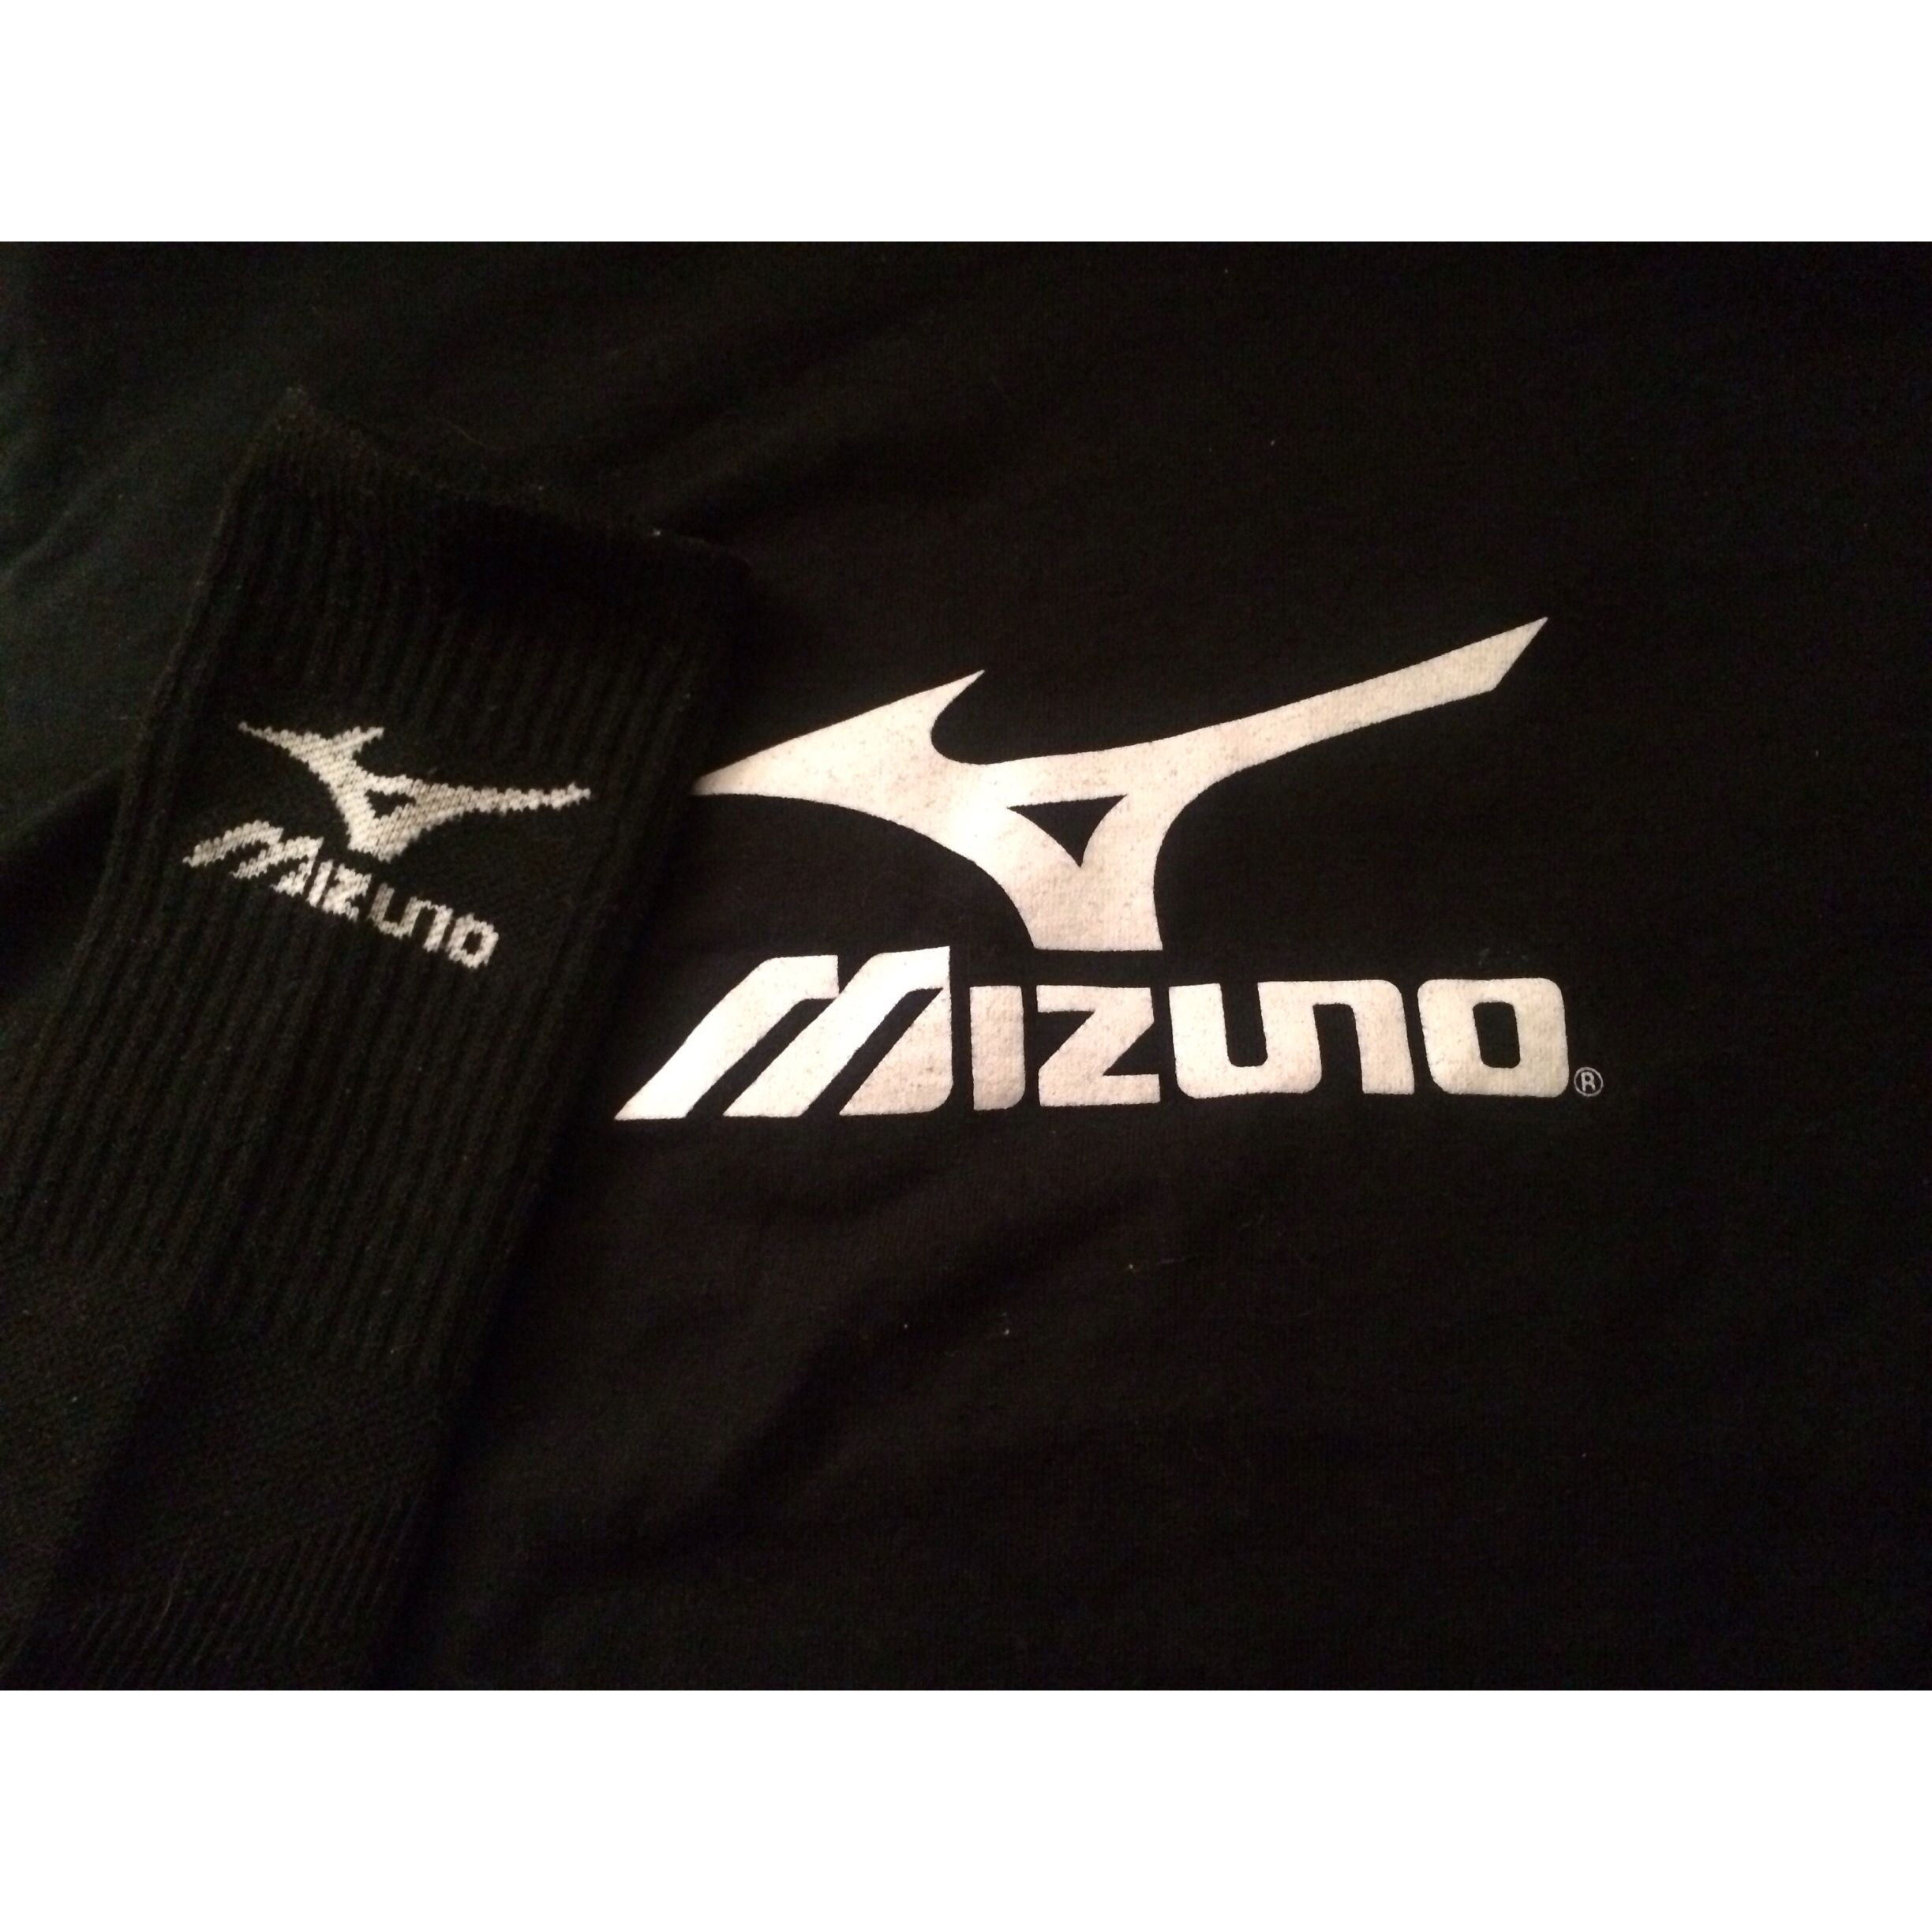 6 Get a picture of the logo: The #Mizuno logo on my socks.